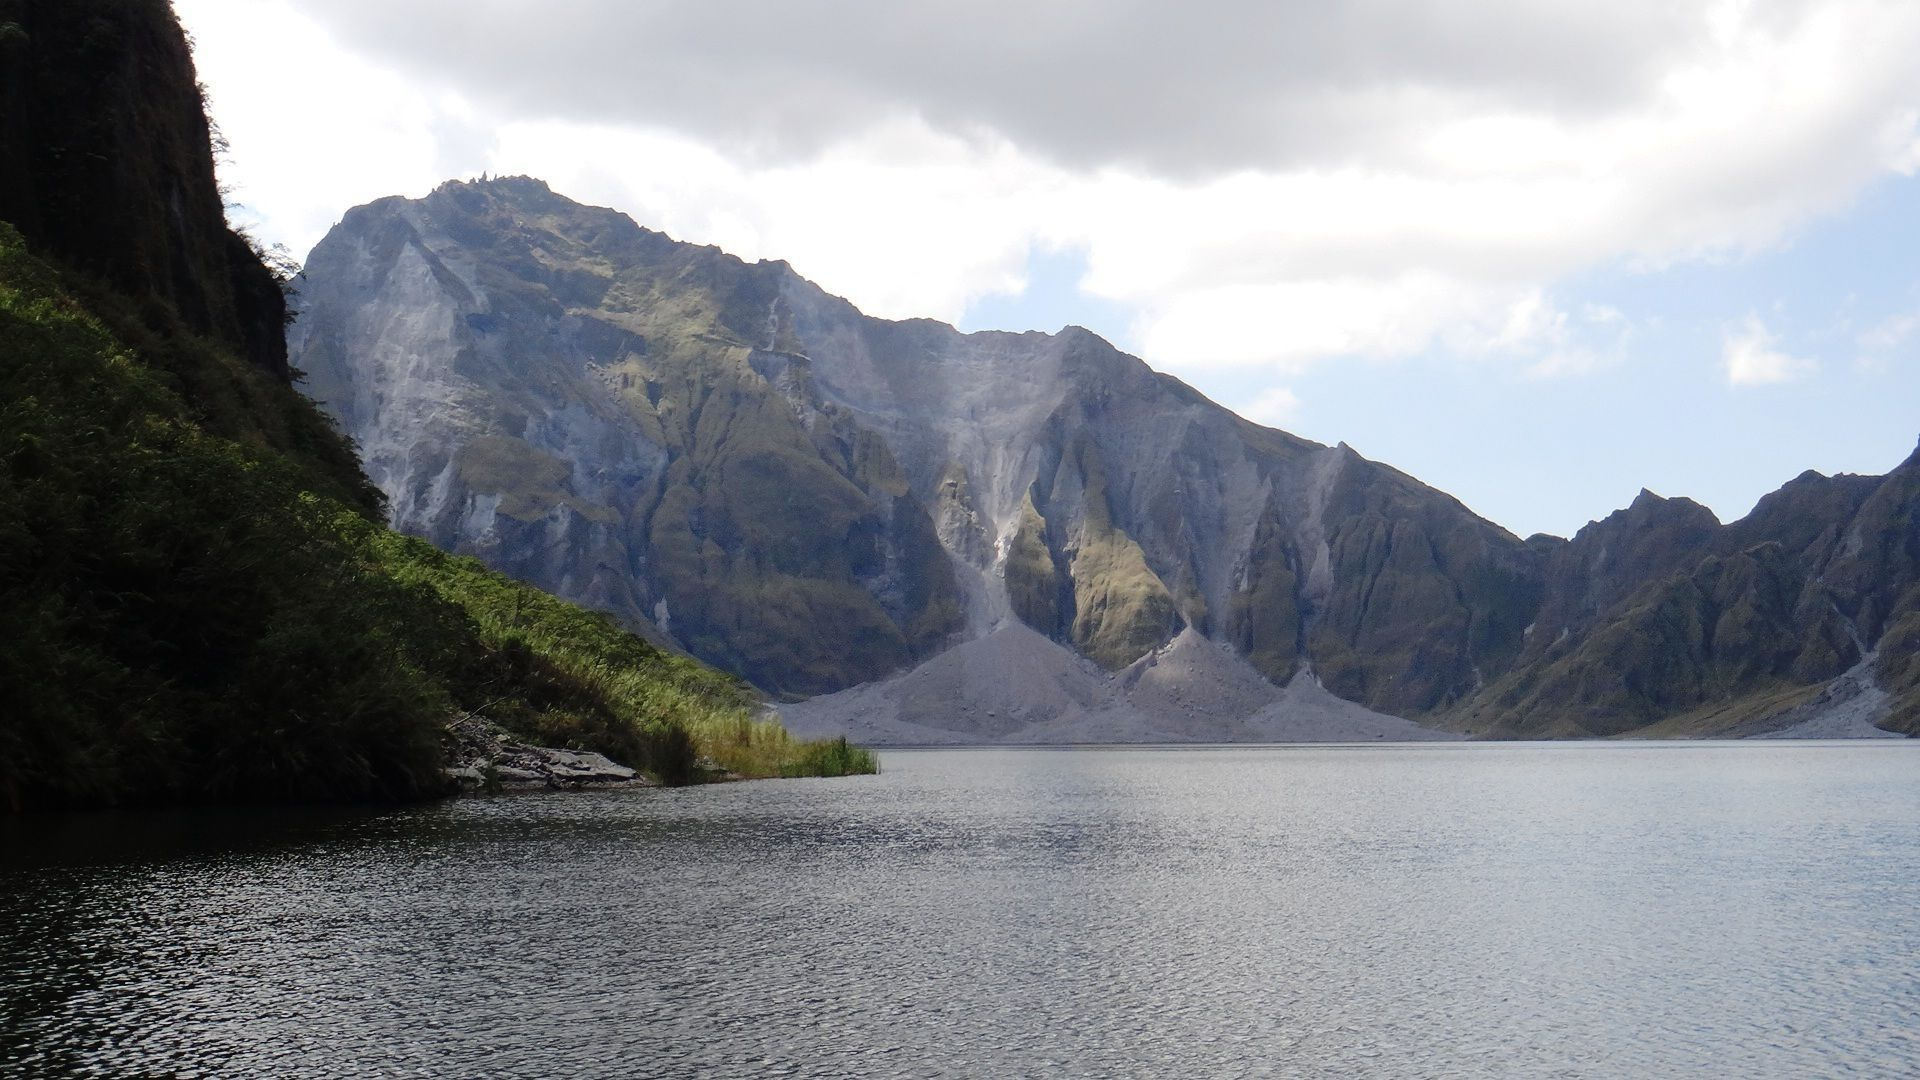 Lake Pinatubo with mountain in the background in the Philippines